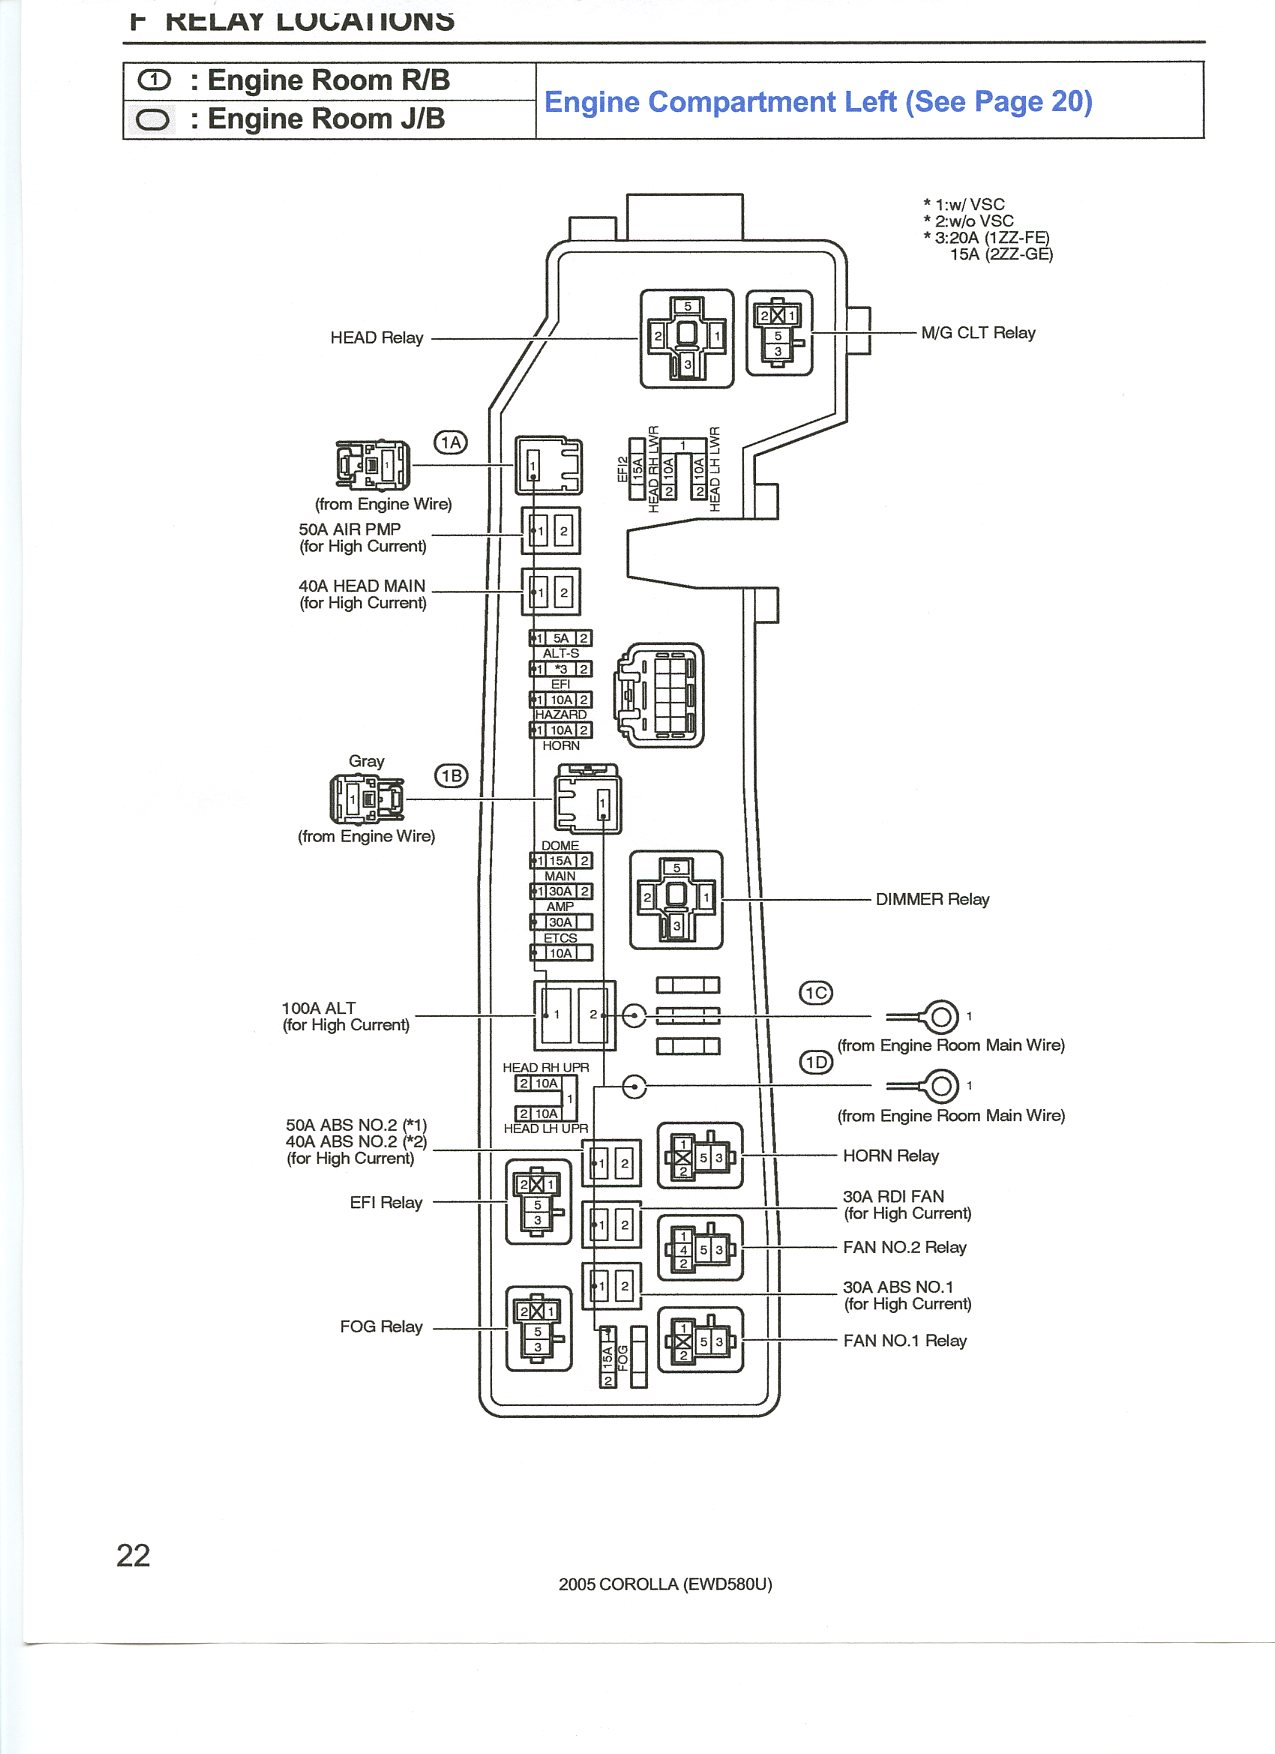 06 toyota corolla fuse box location detailed schematic diagrams 2000 toyota corolla fuse box diagram 2006 toyota corolla fuse box detailed schematic diagrams 2004 toyota corolla fuse box location 06 toyota corolla fuse box location